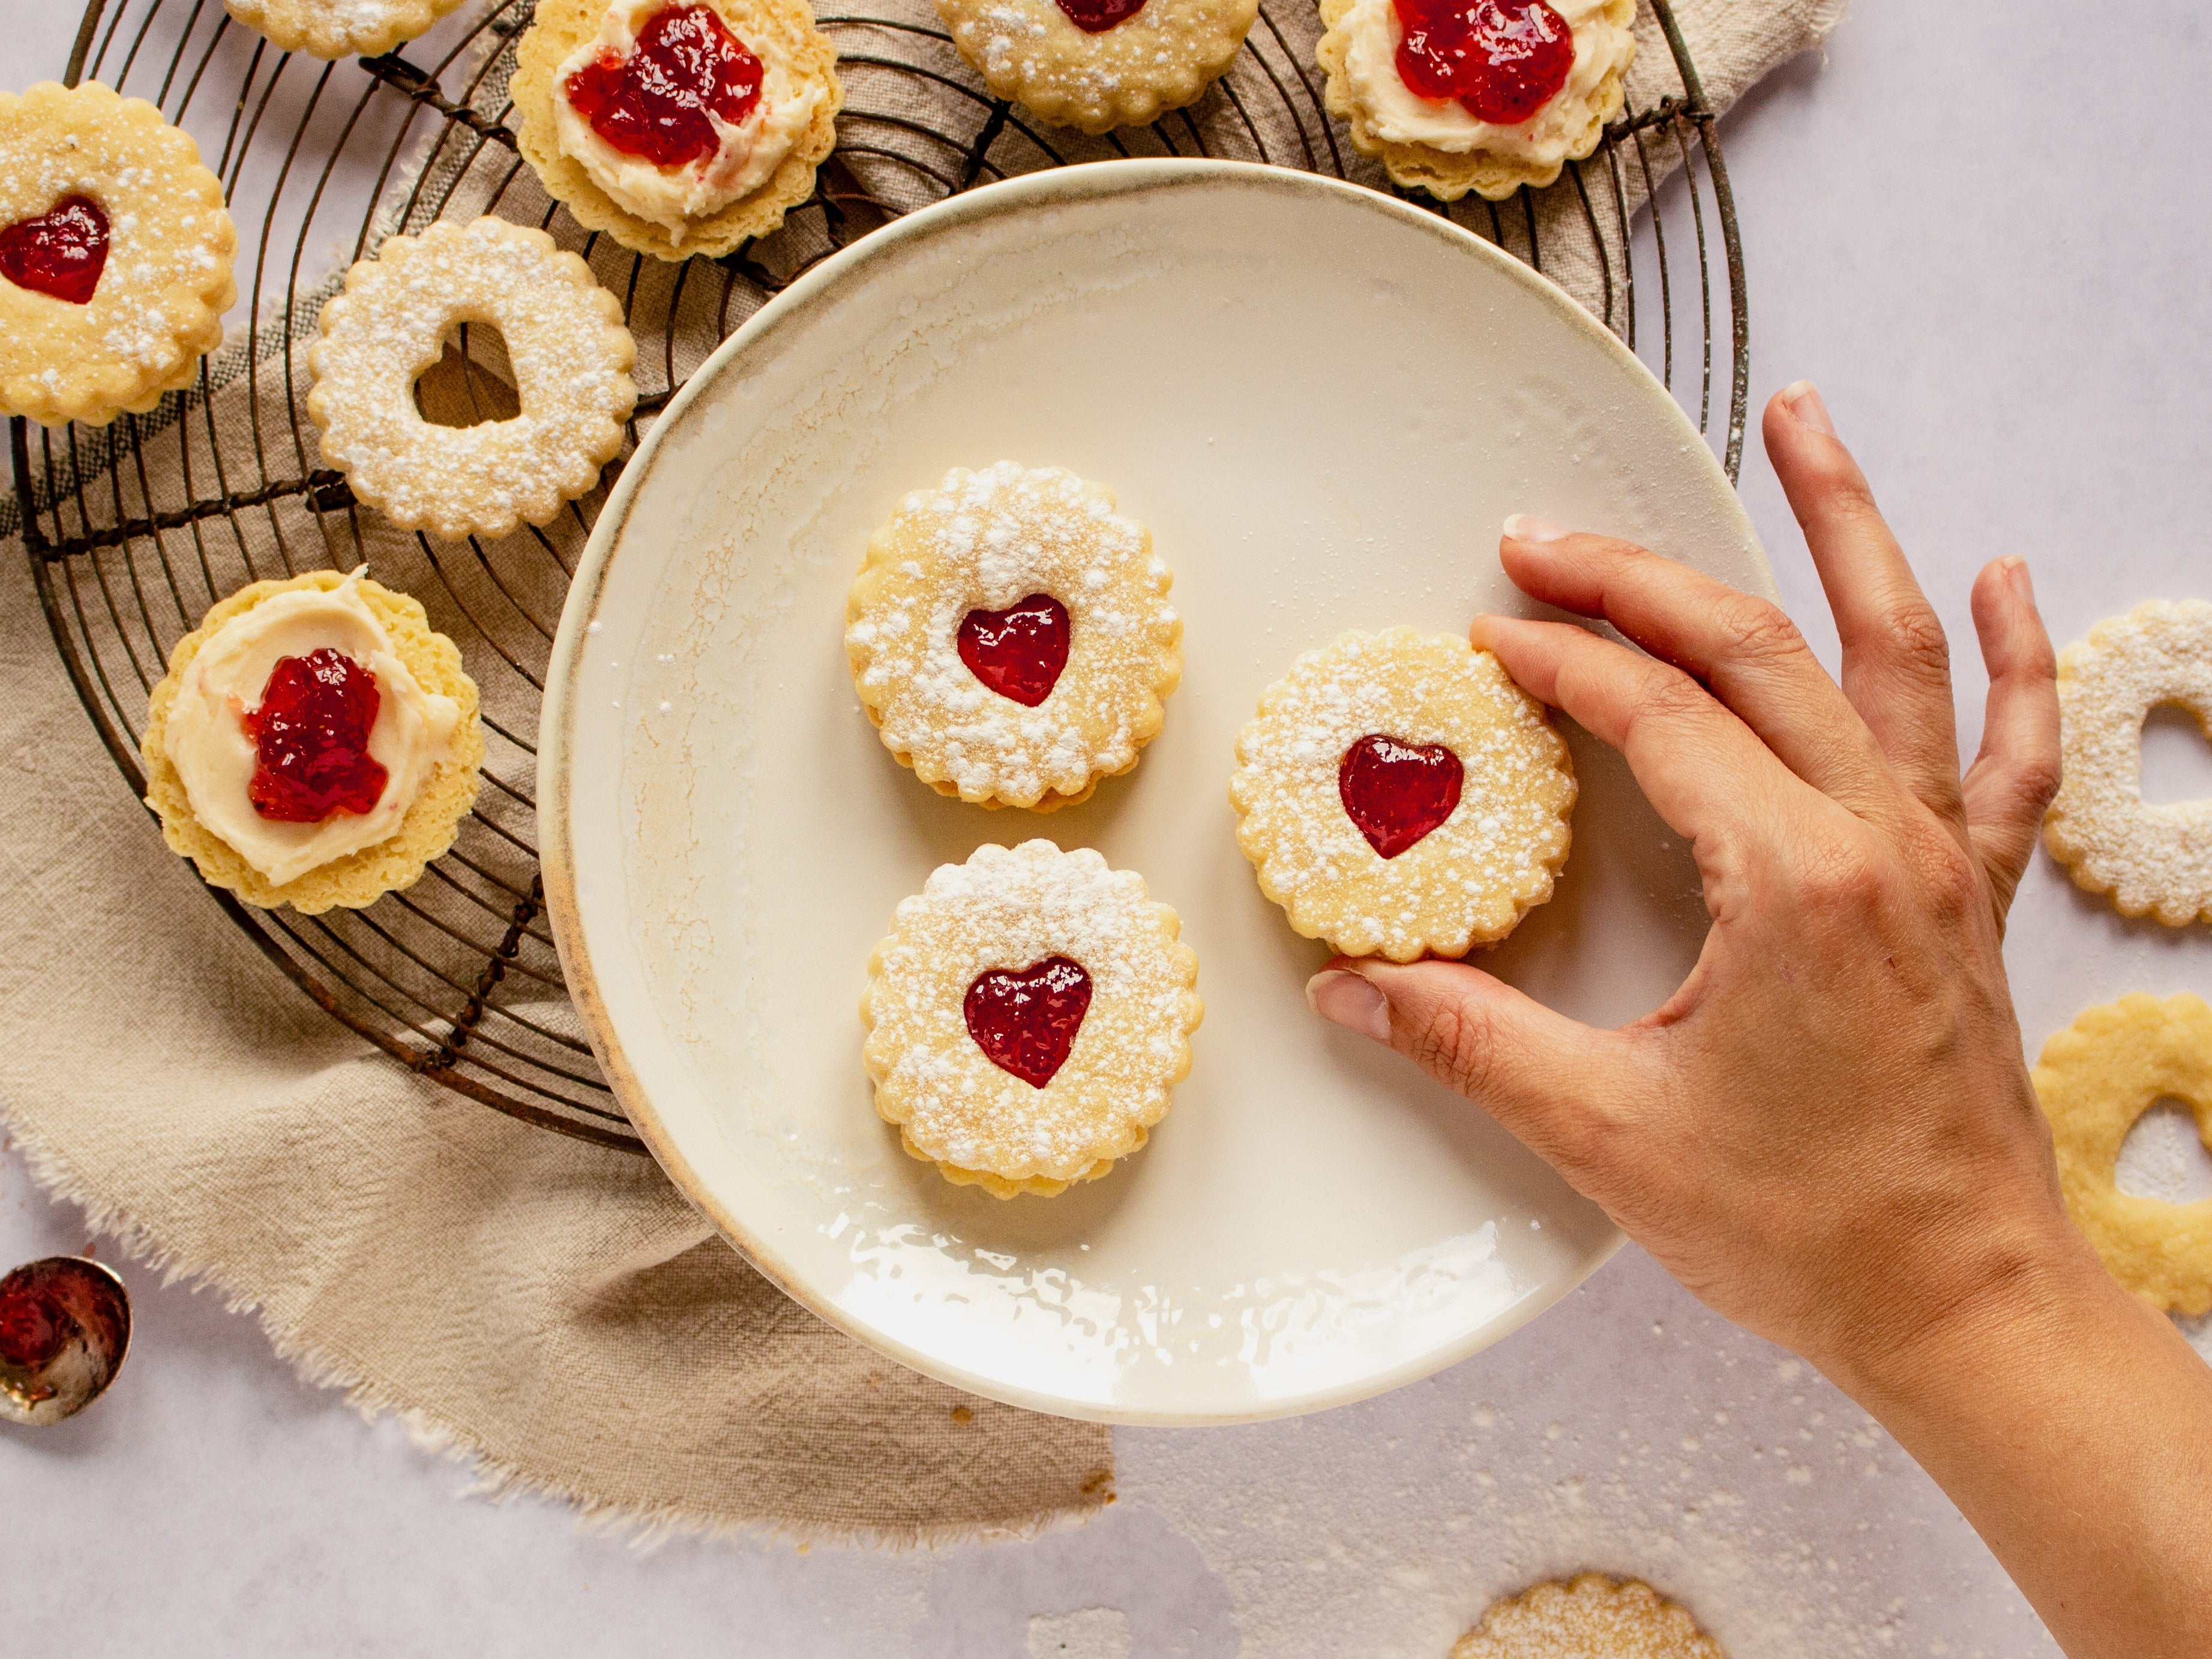 3 Jammy Dodgers on white plate with hand reaching in. Pulled apart biscuits on cooling rack